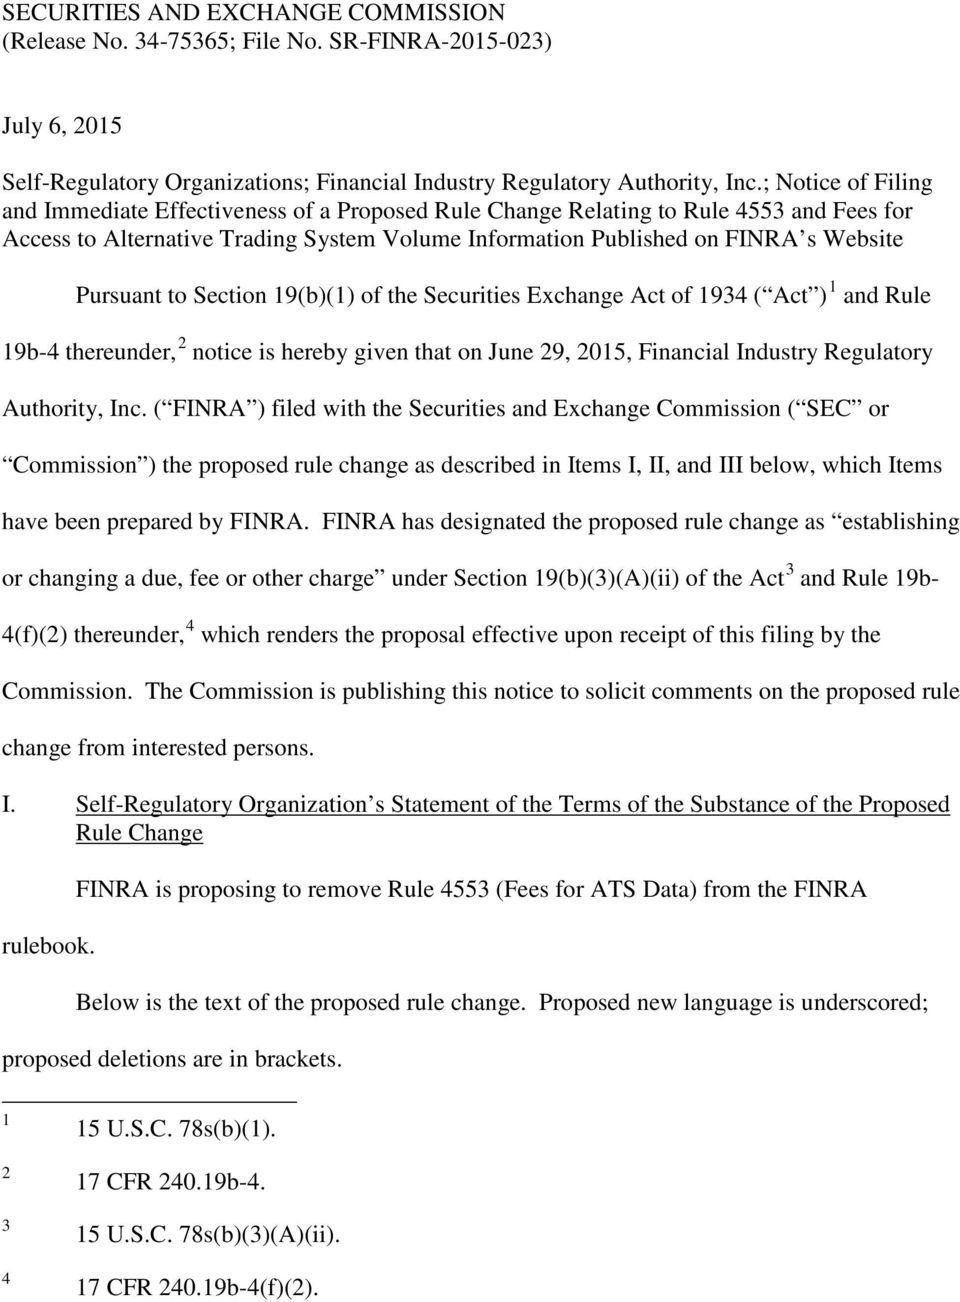 Pursuant to Section 19(b)(1) of the Securities Exchange Act of 1934 ( Act ) 1 and Rule 19b-4 thereunder, 2 notice is hereby given that on June 29, 2015, Financial Industry Regulatory Authority, Inc.